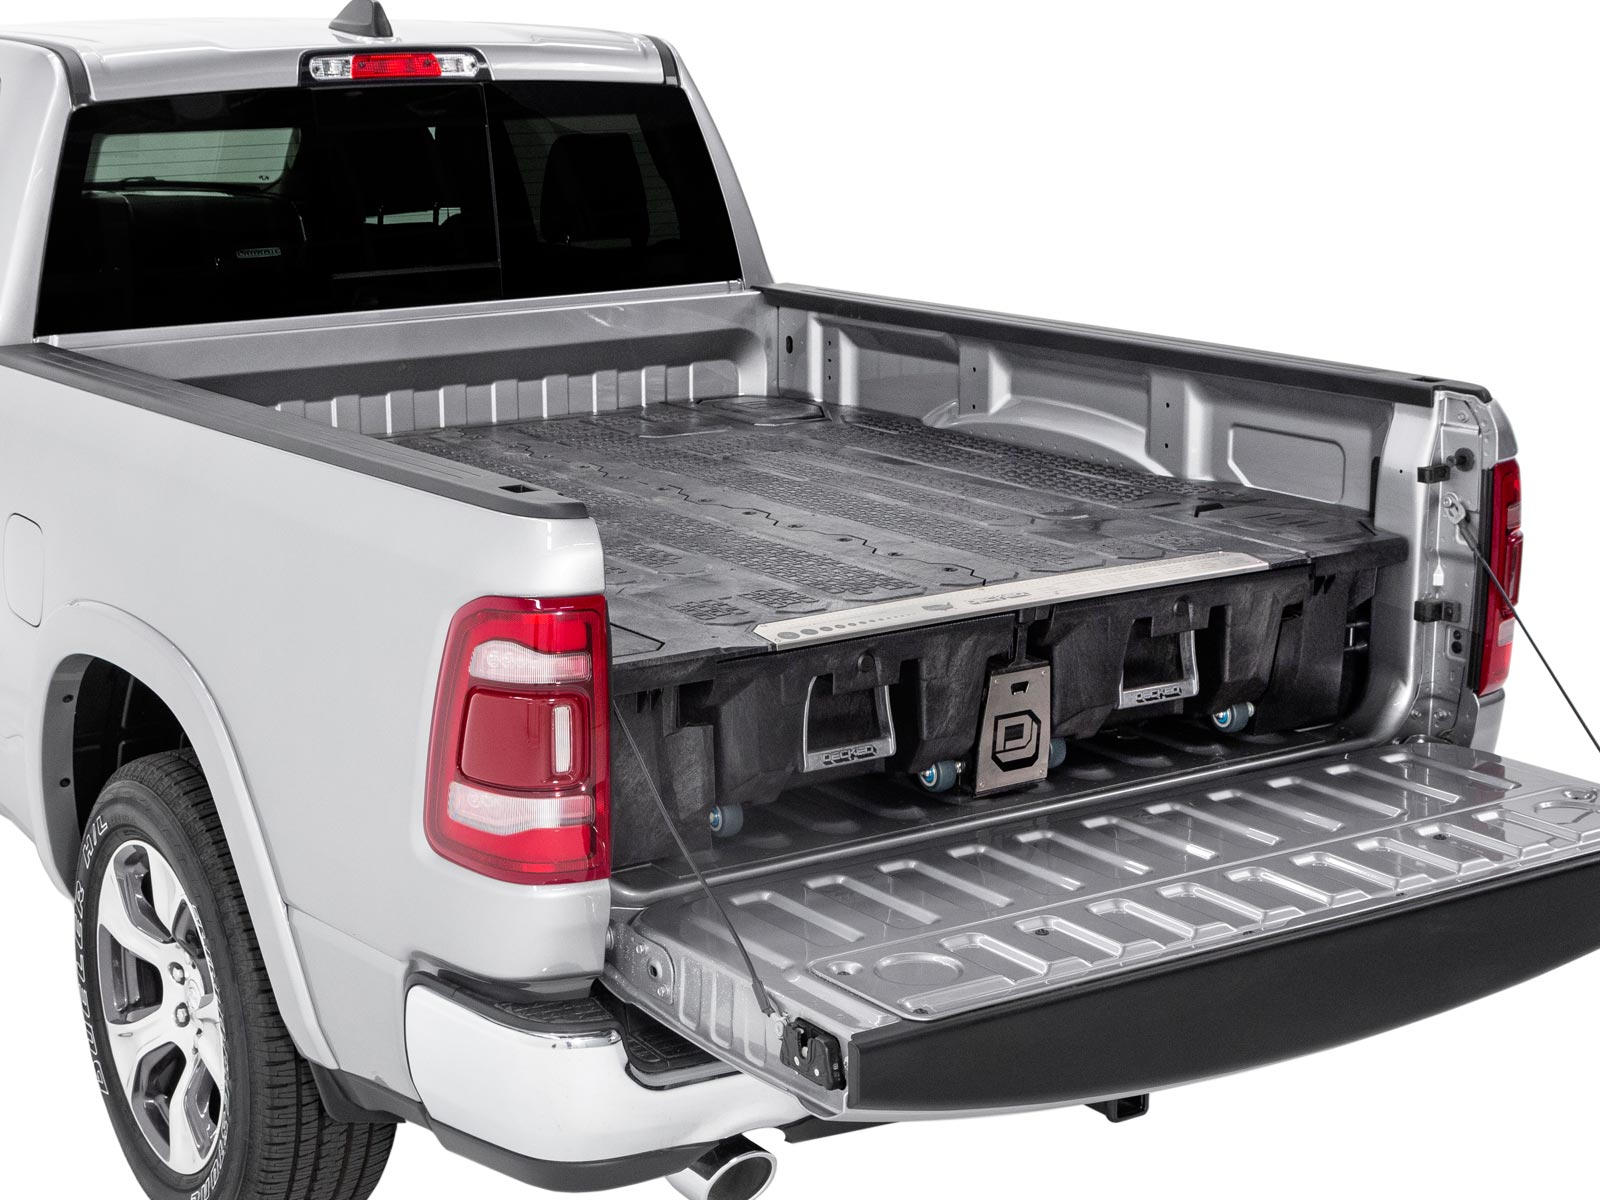 Toyota Tacoma Work Truck Accessories Realtruck